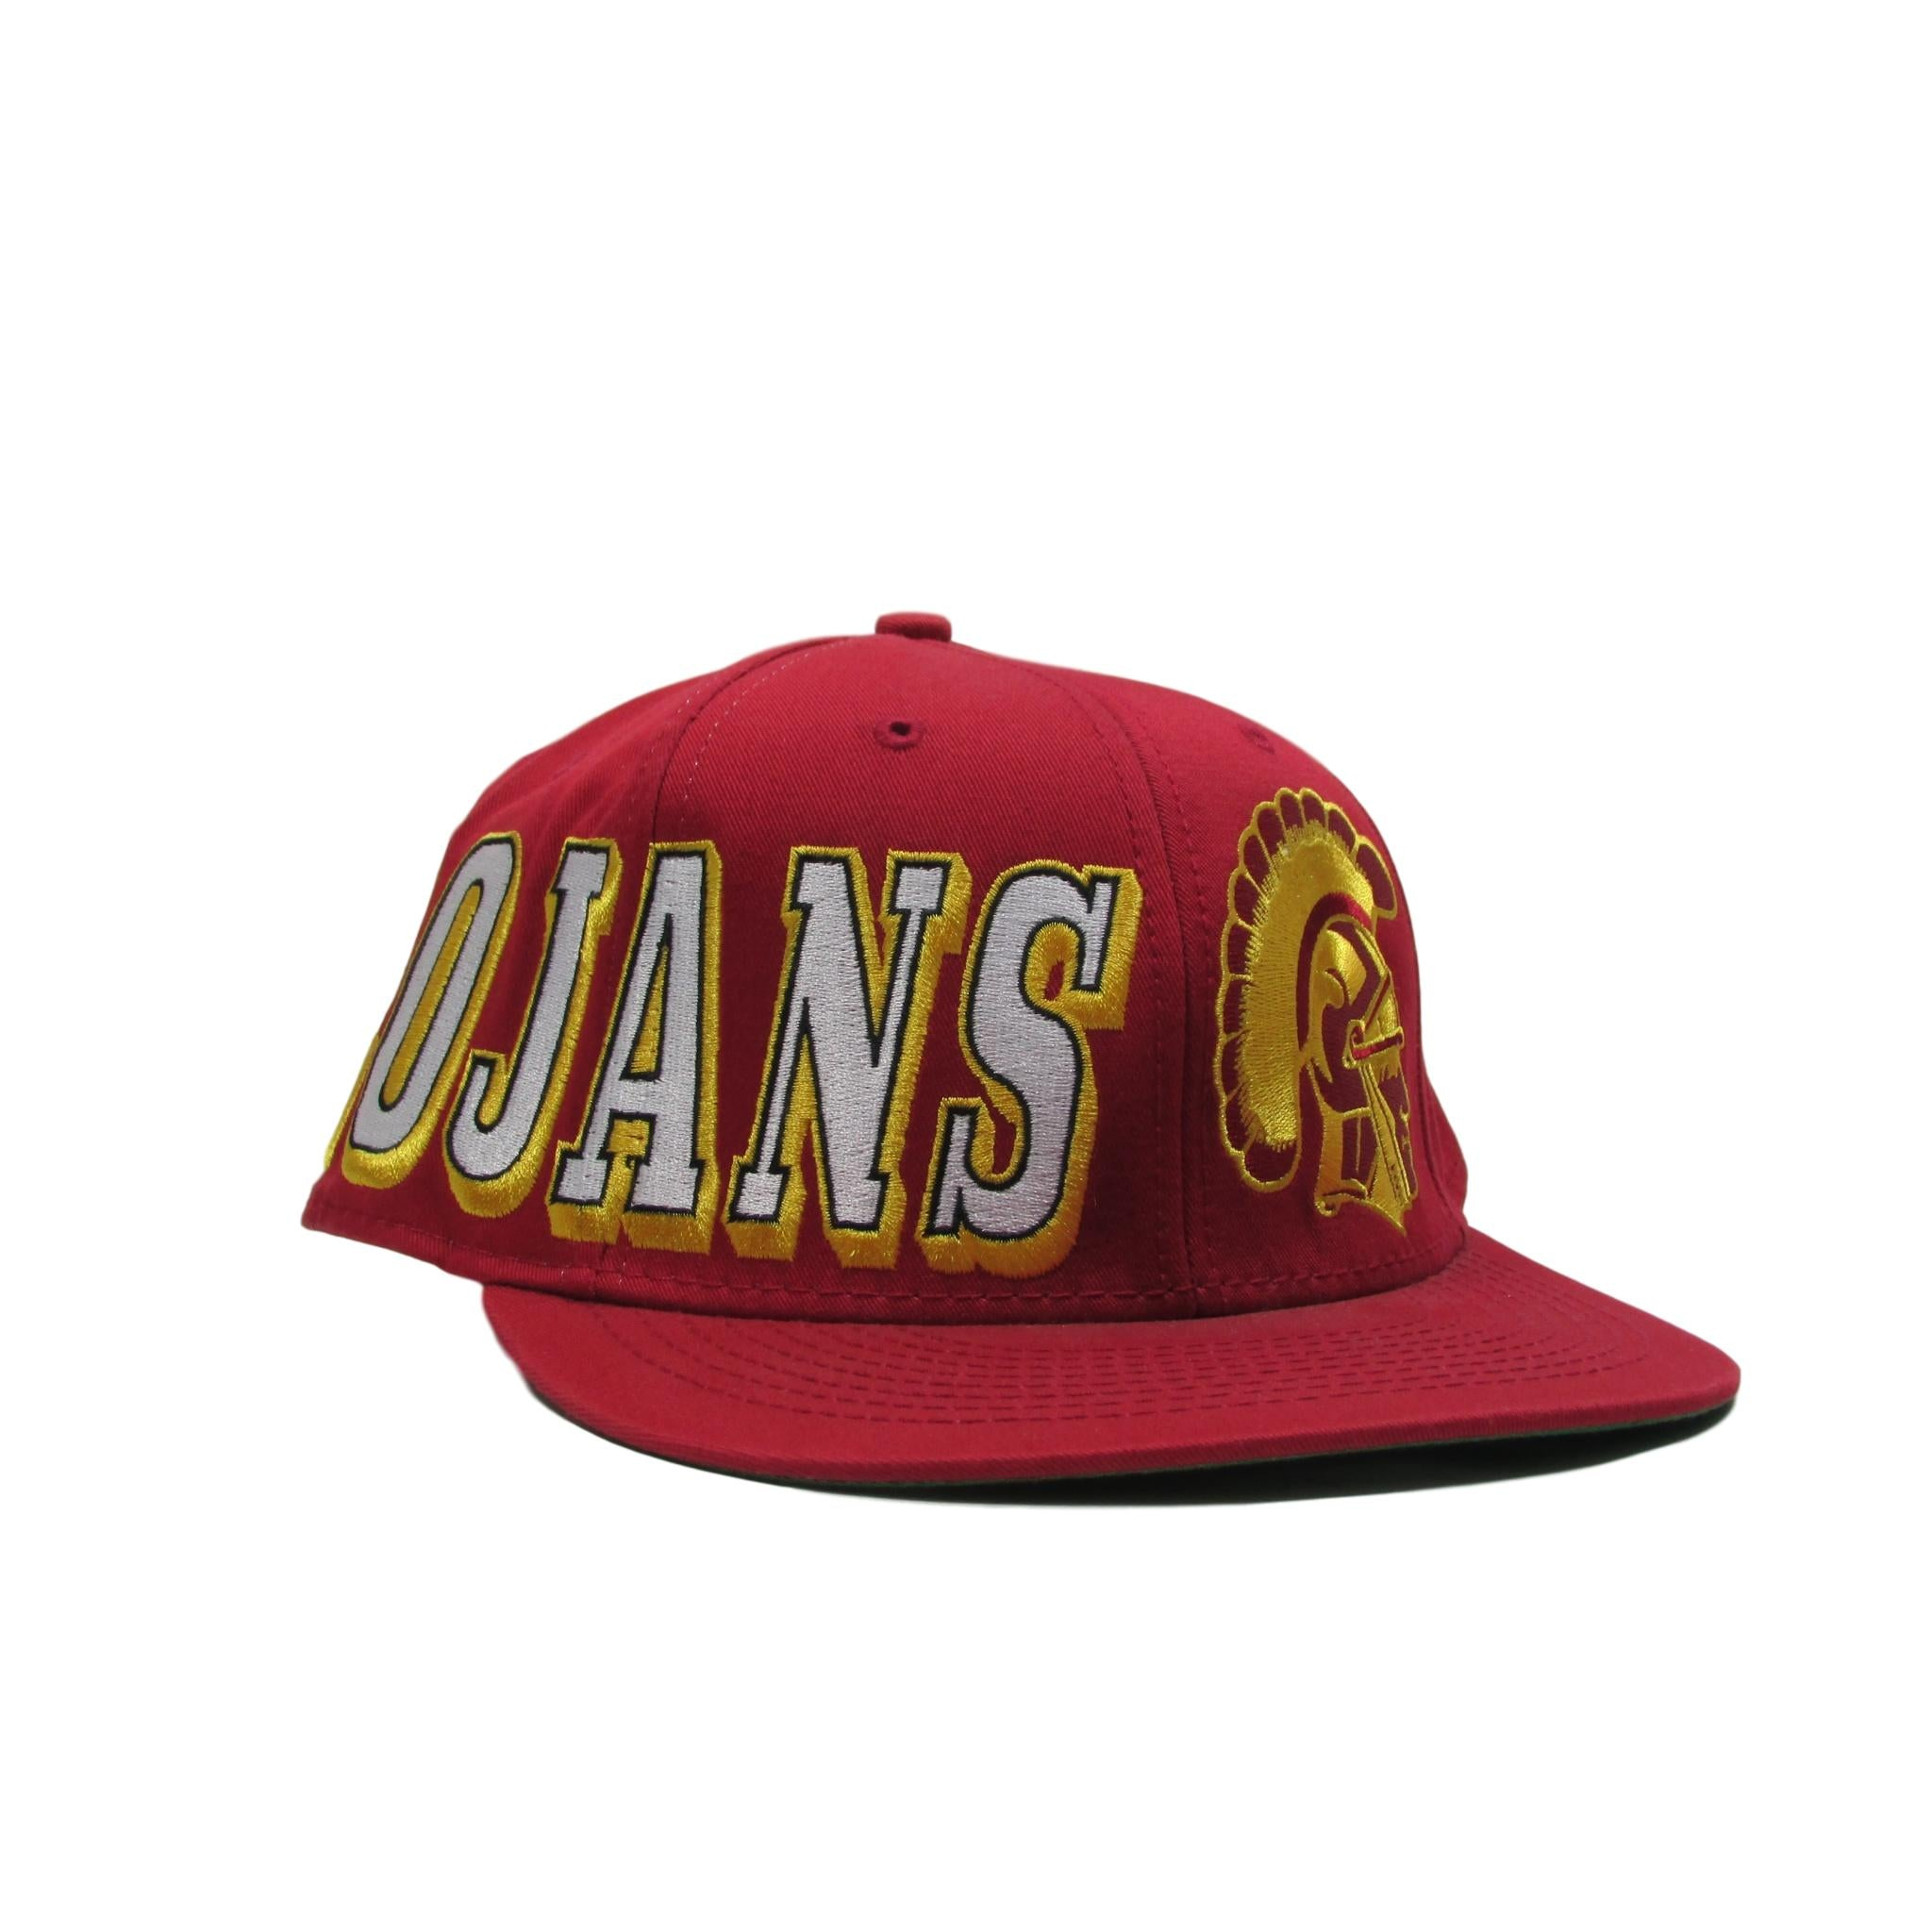 University of Southern California USC Trojans College Football Snapback Hat